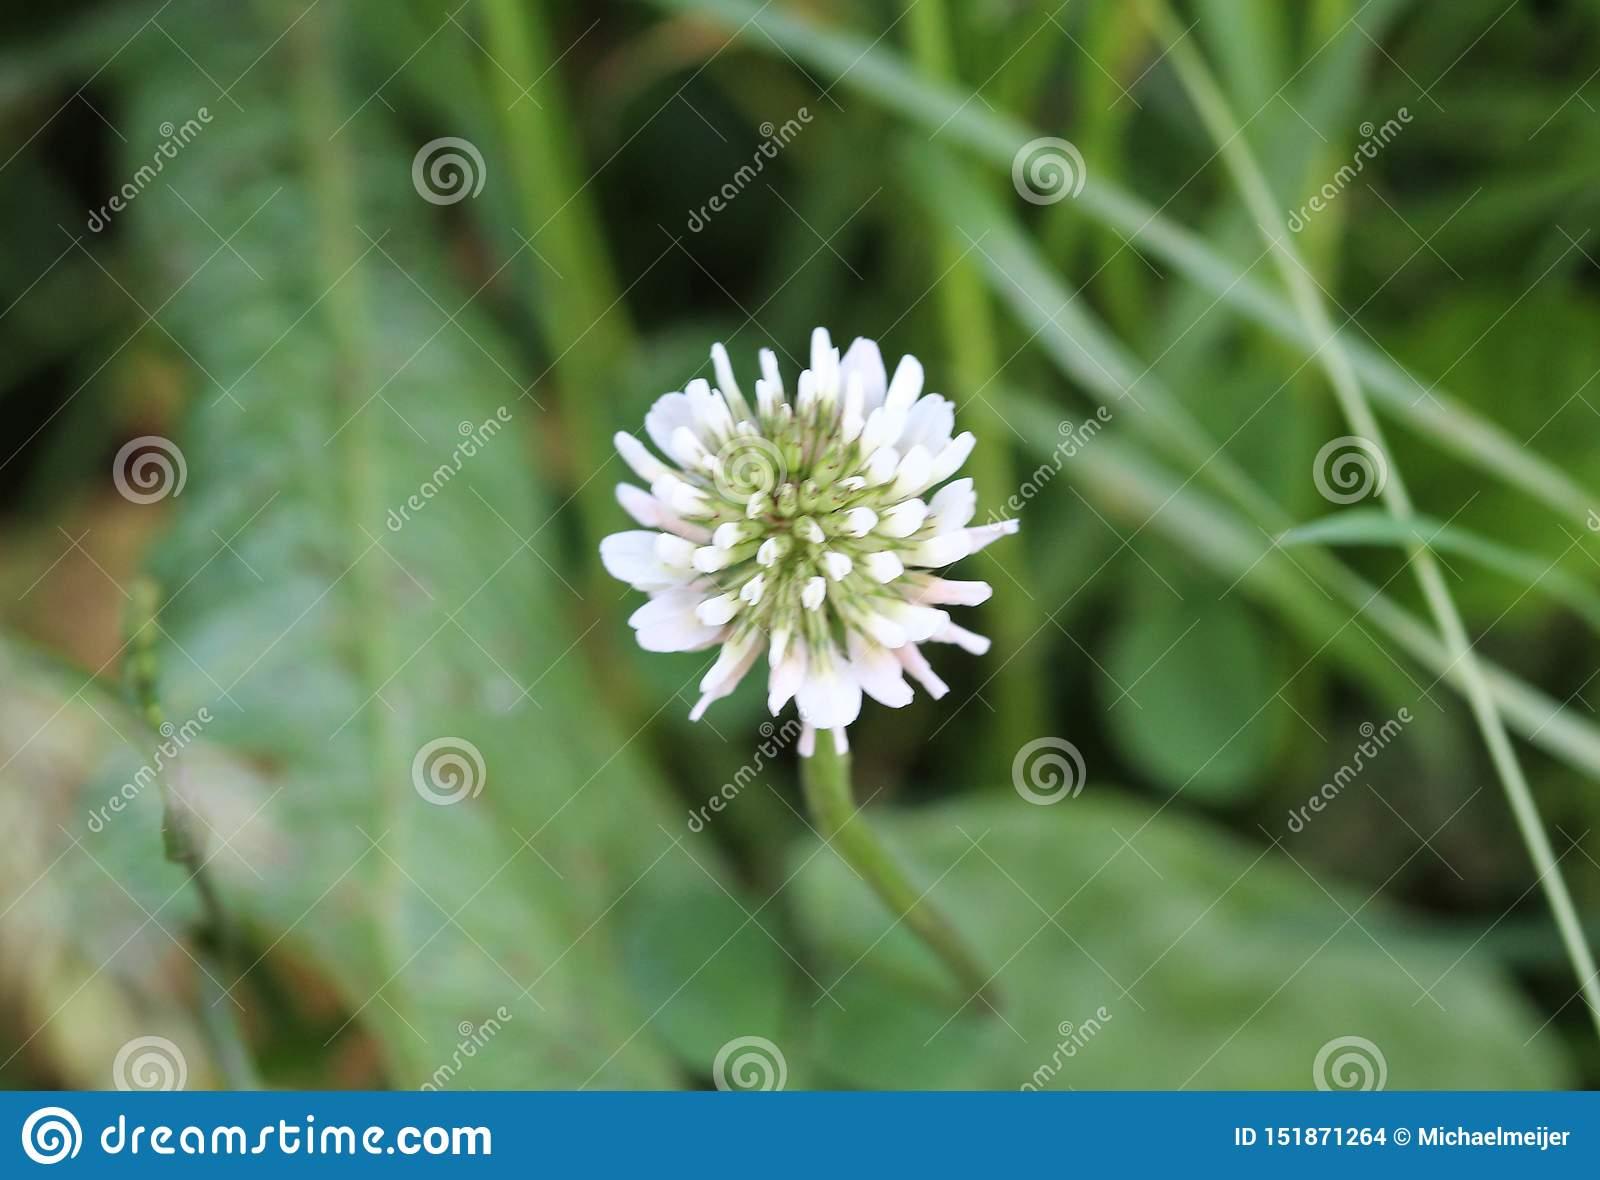 Trifolium repens, also know as the white clover, Dutch clover, Ladino clover, or Ladino, blooming in spring